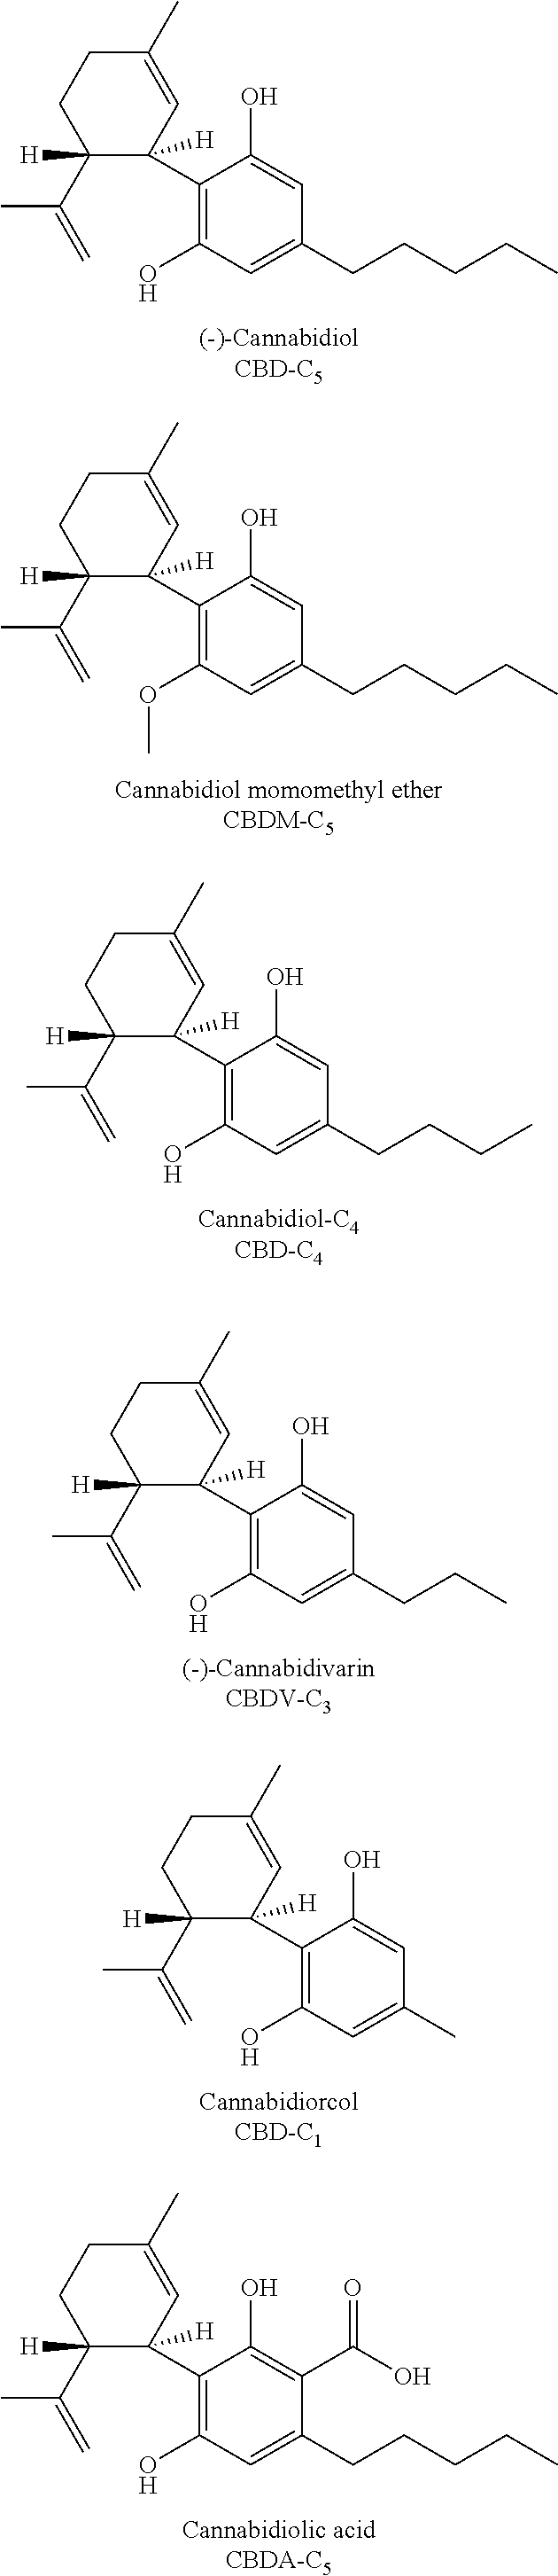 US20180064055A1 - Extracts of cbd and thc - Google Patents